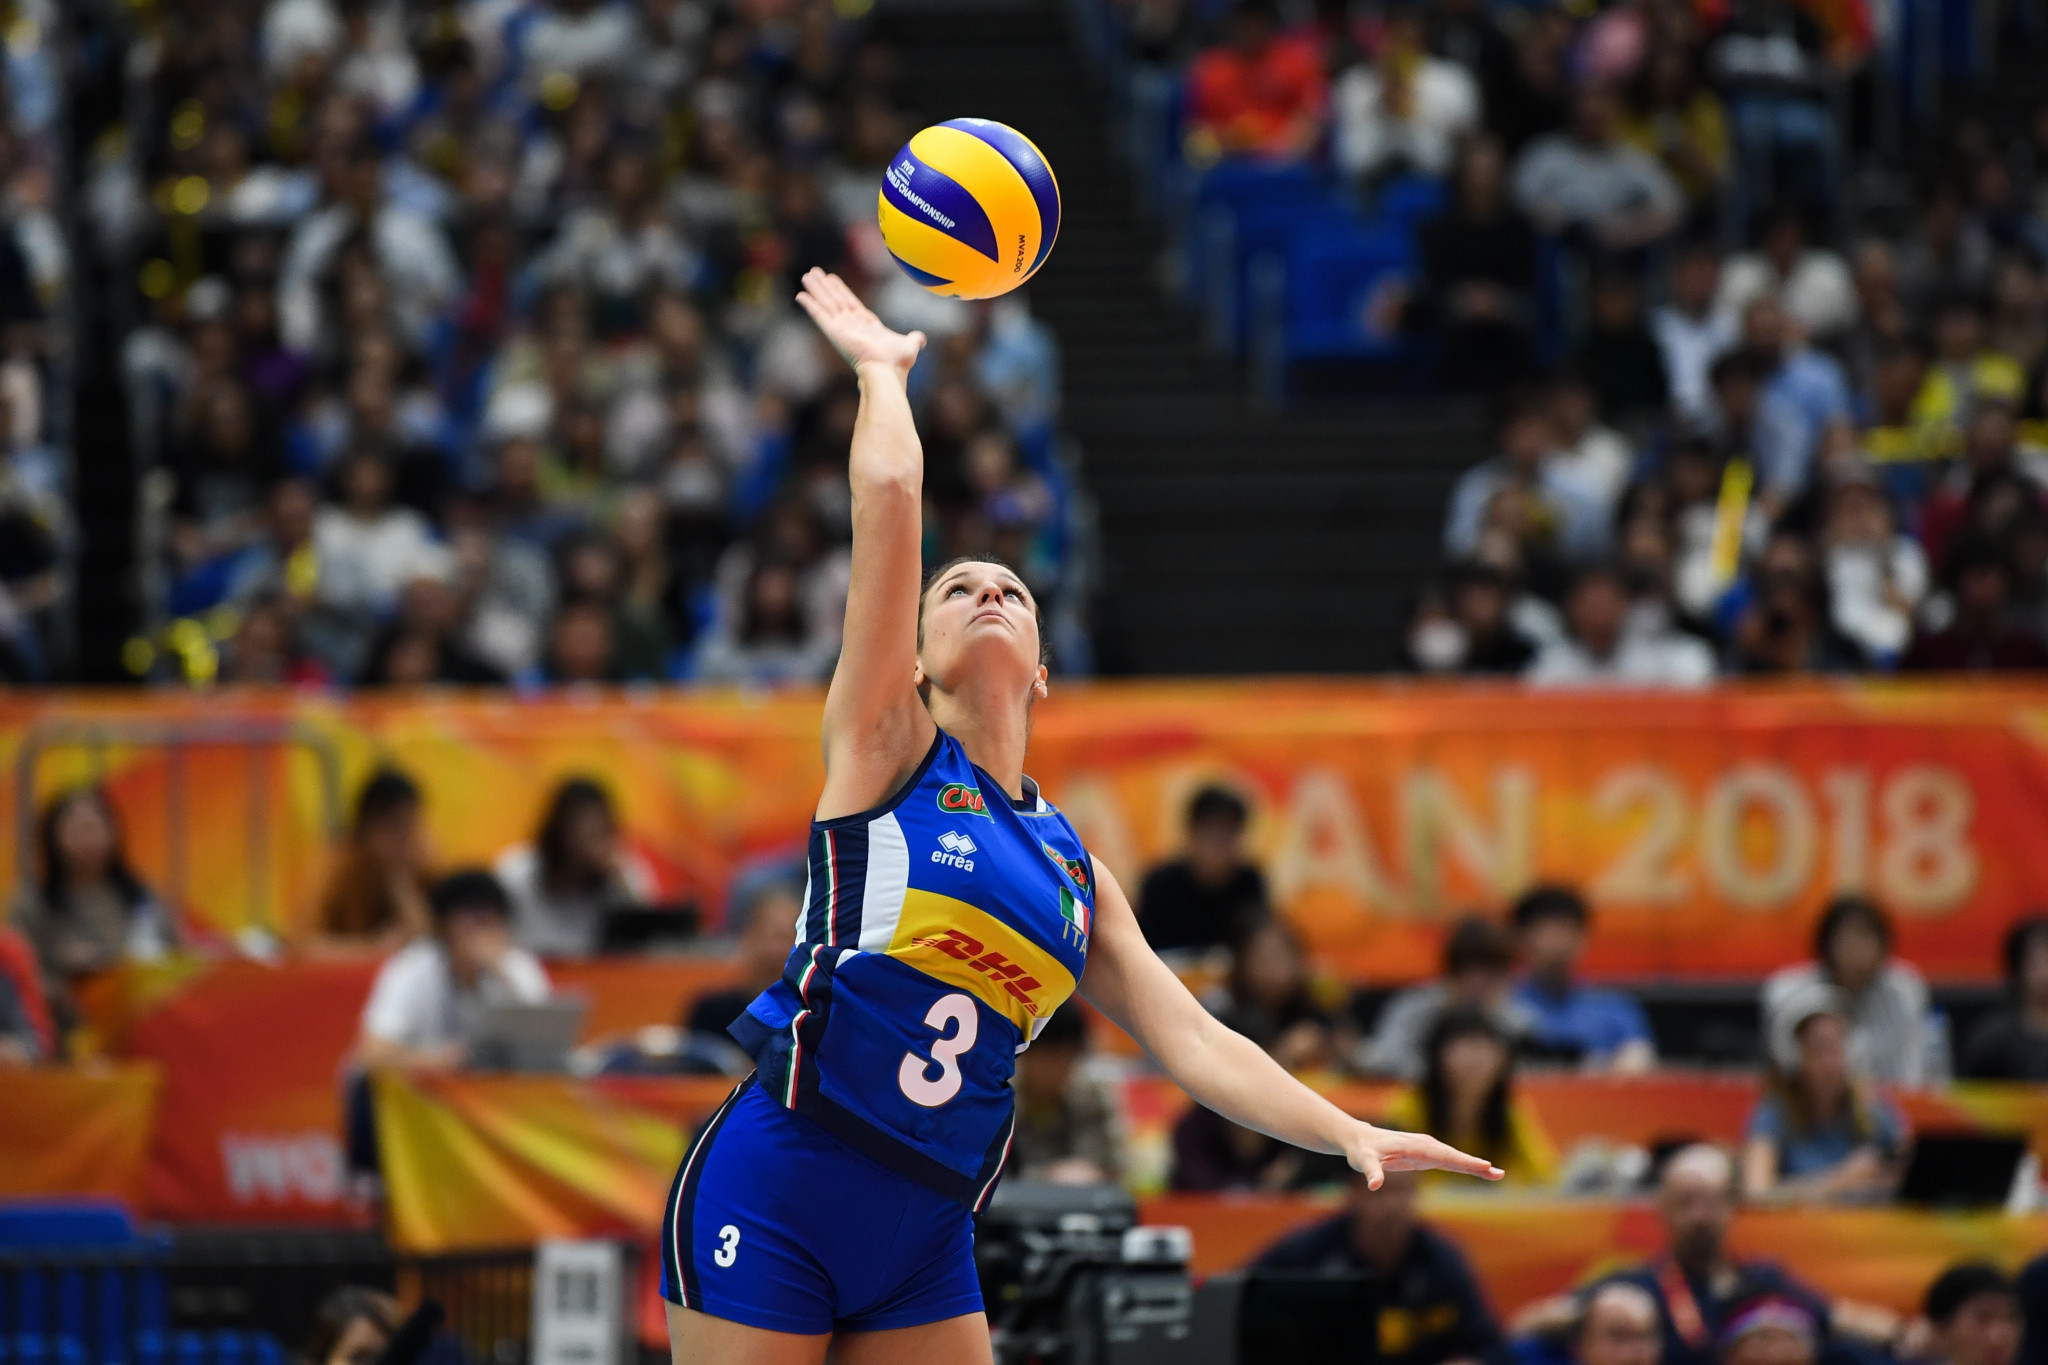 Italy has not entered either the men's or women's volleyball tournaments at their home Summer Universiade ©Getty Images